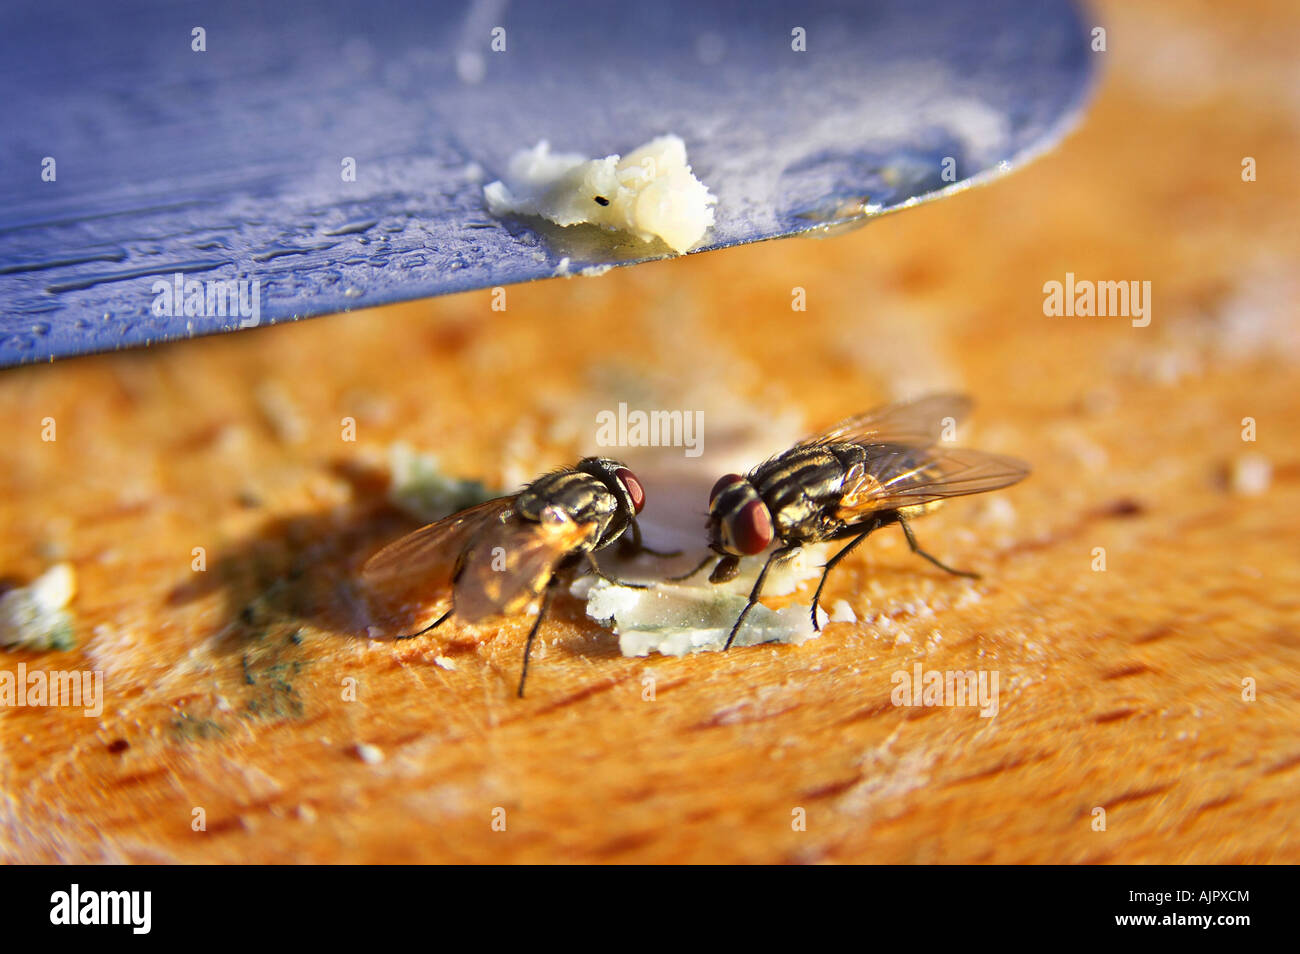 Houseflys feeding on a wooden chopping board - Stock Image